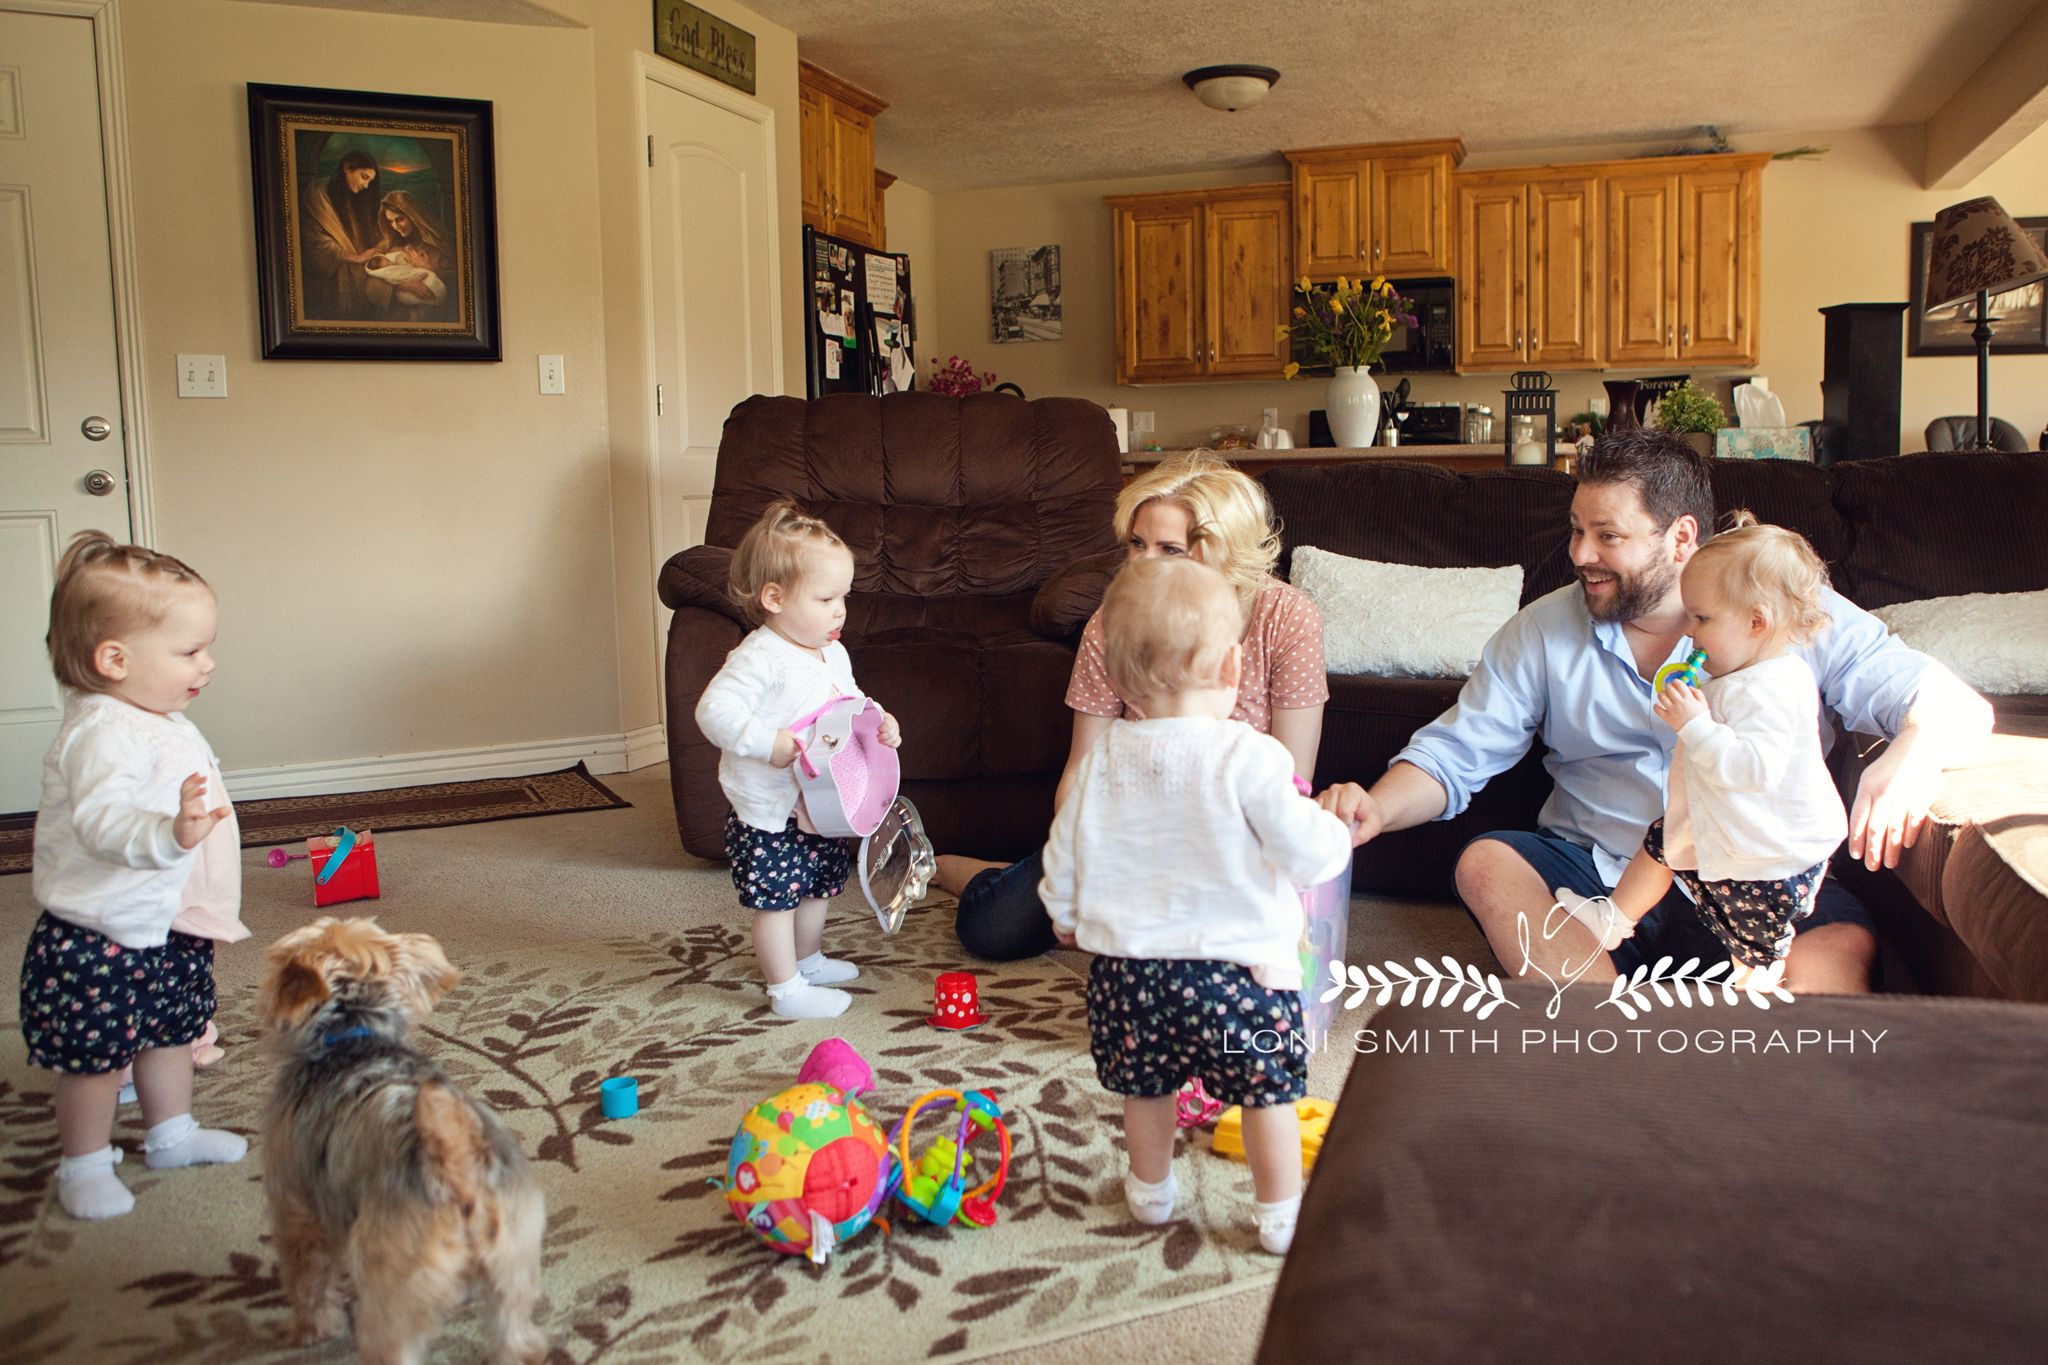 Loni Smith Photography Utah whimsical child photographer, children photography, Gardner Quadruplets, quad squad, multiples